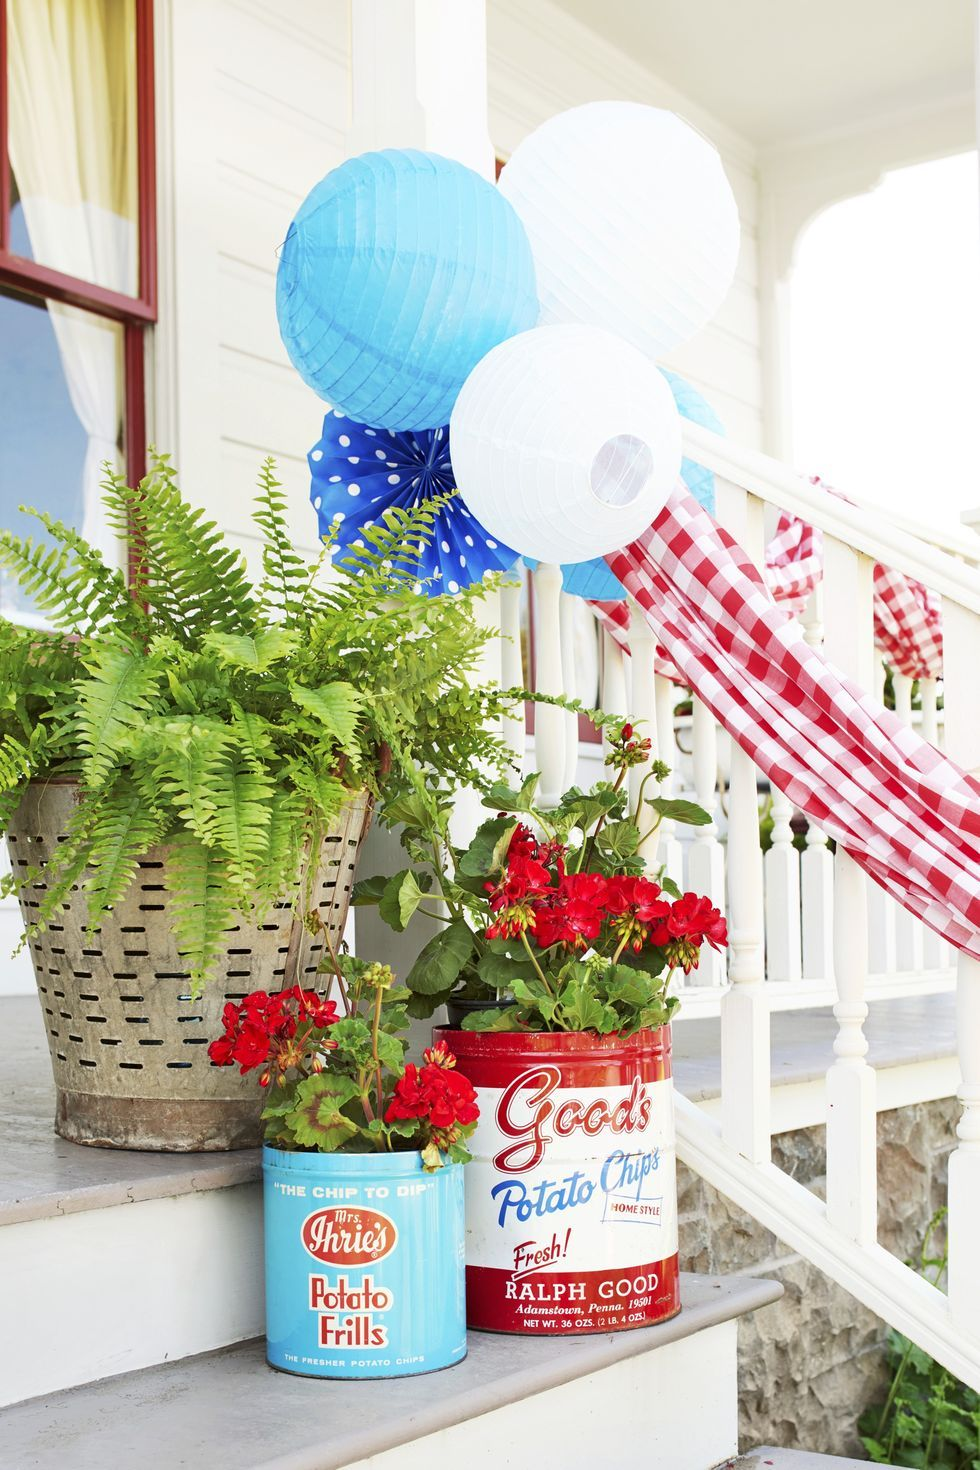 28 Best Front Porch Ideas - Ideas for Front Porch and Patio Decorating